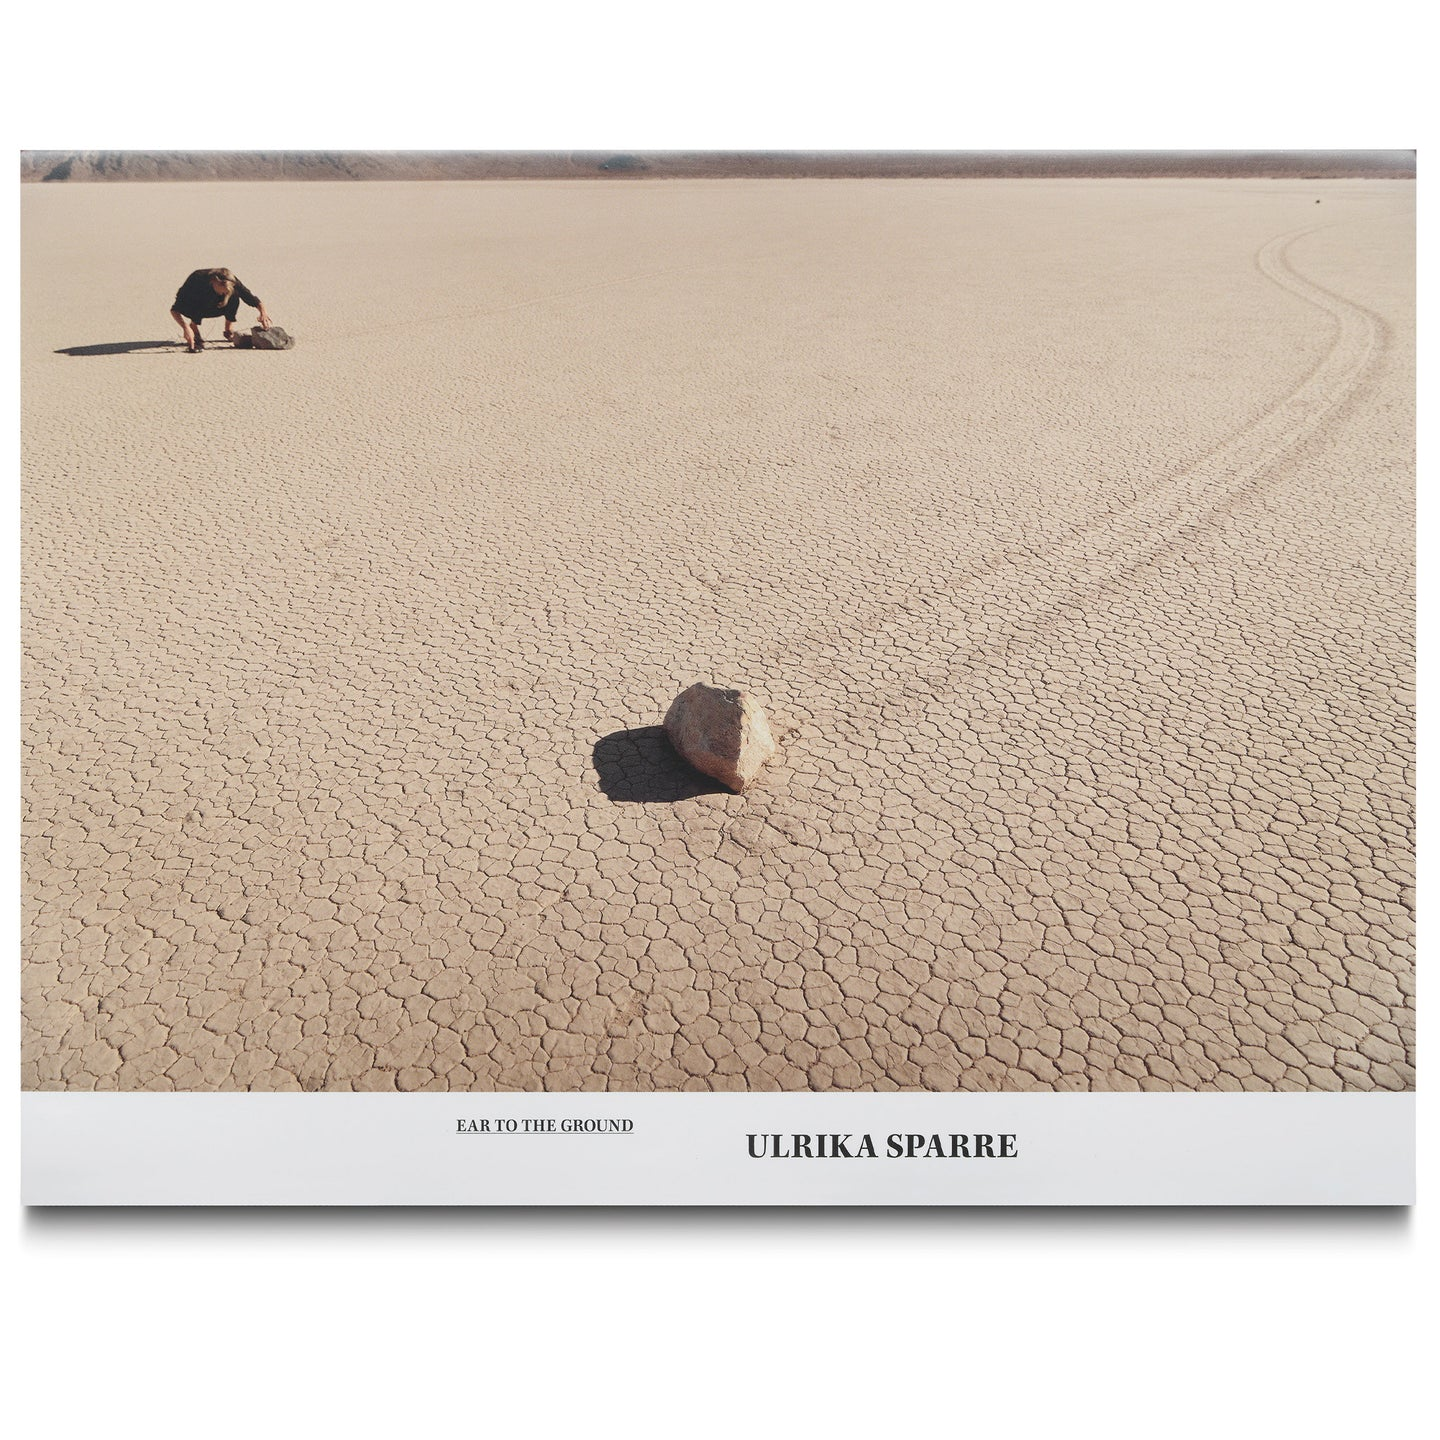 ULRIKA SPARRE: EAR TO THE GROUND